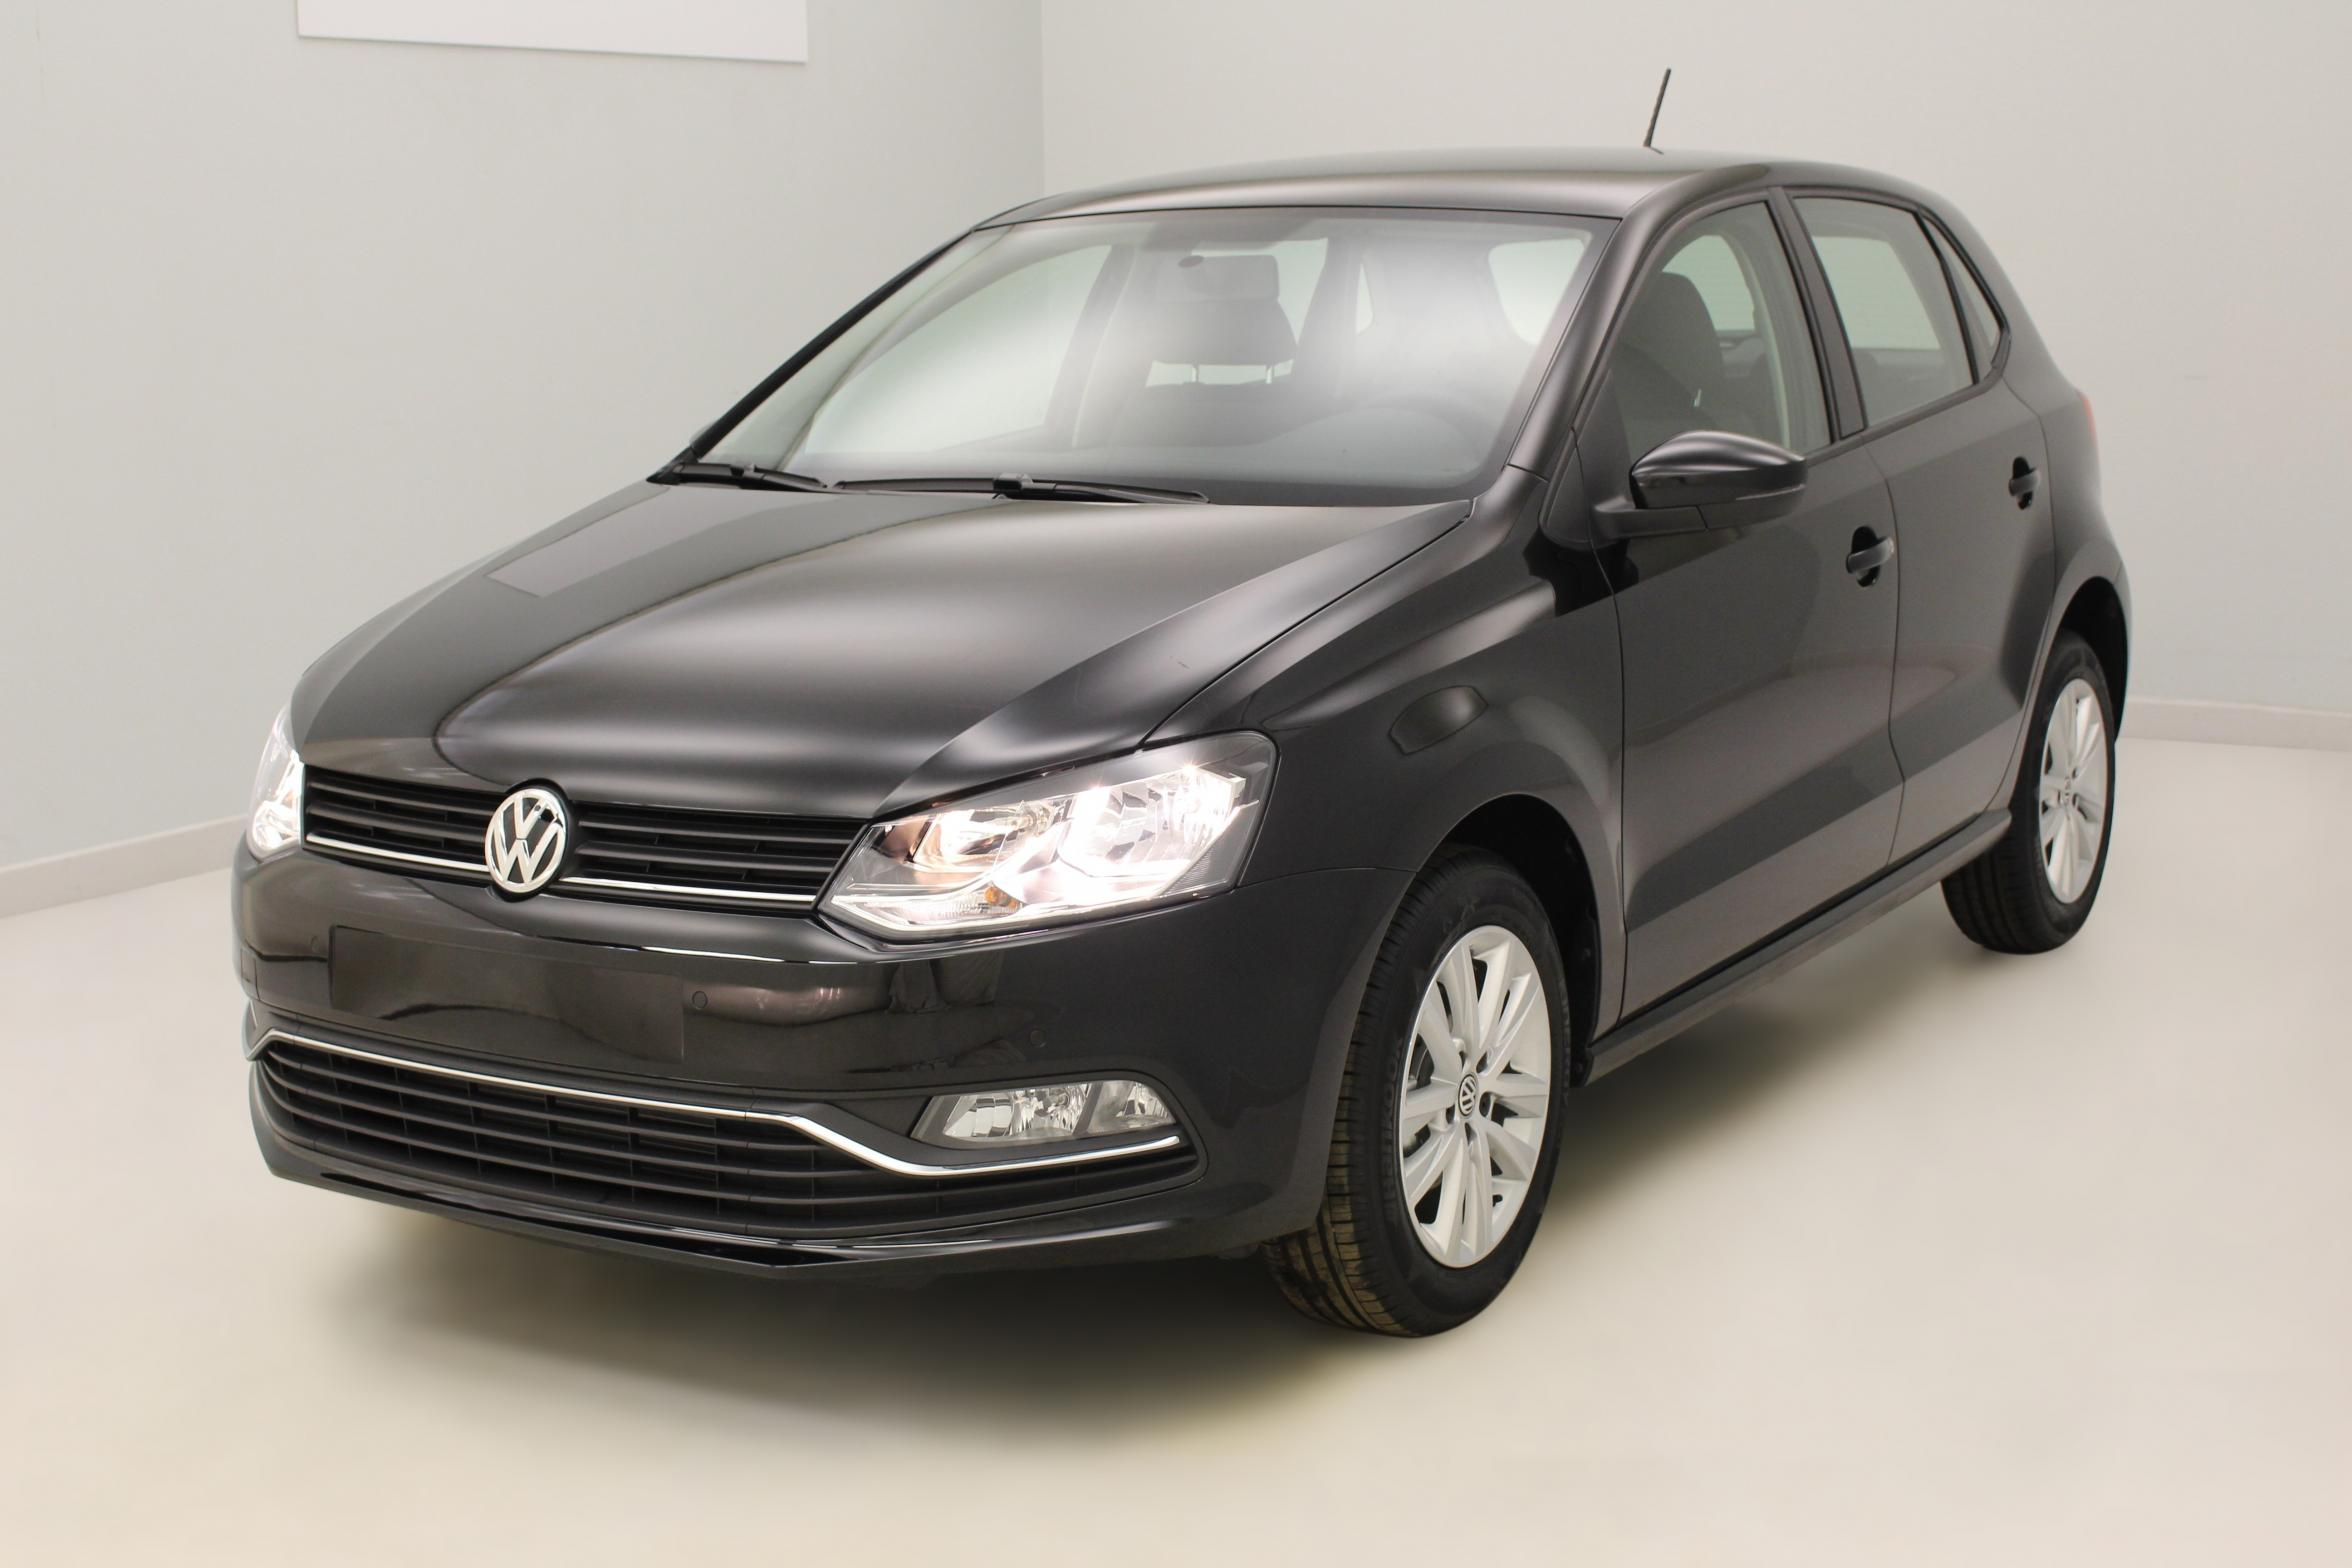 VOLKSWAGEN Nouvelle Polo 1.4 TDI 90 BlueMotion Technology Confortline Noir Uni - Garantie 5 ans ou 100.000 kms avec options